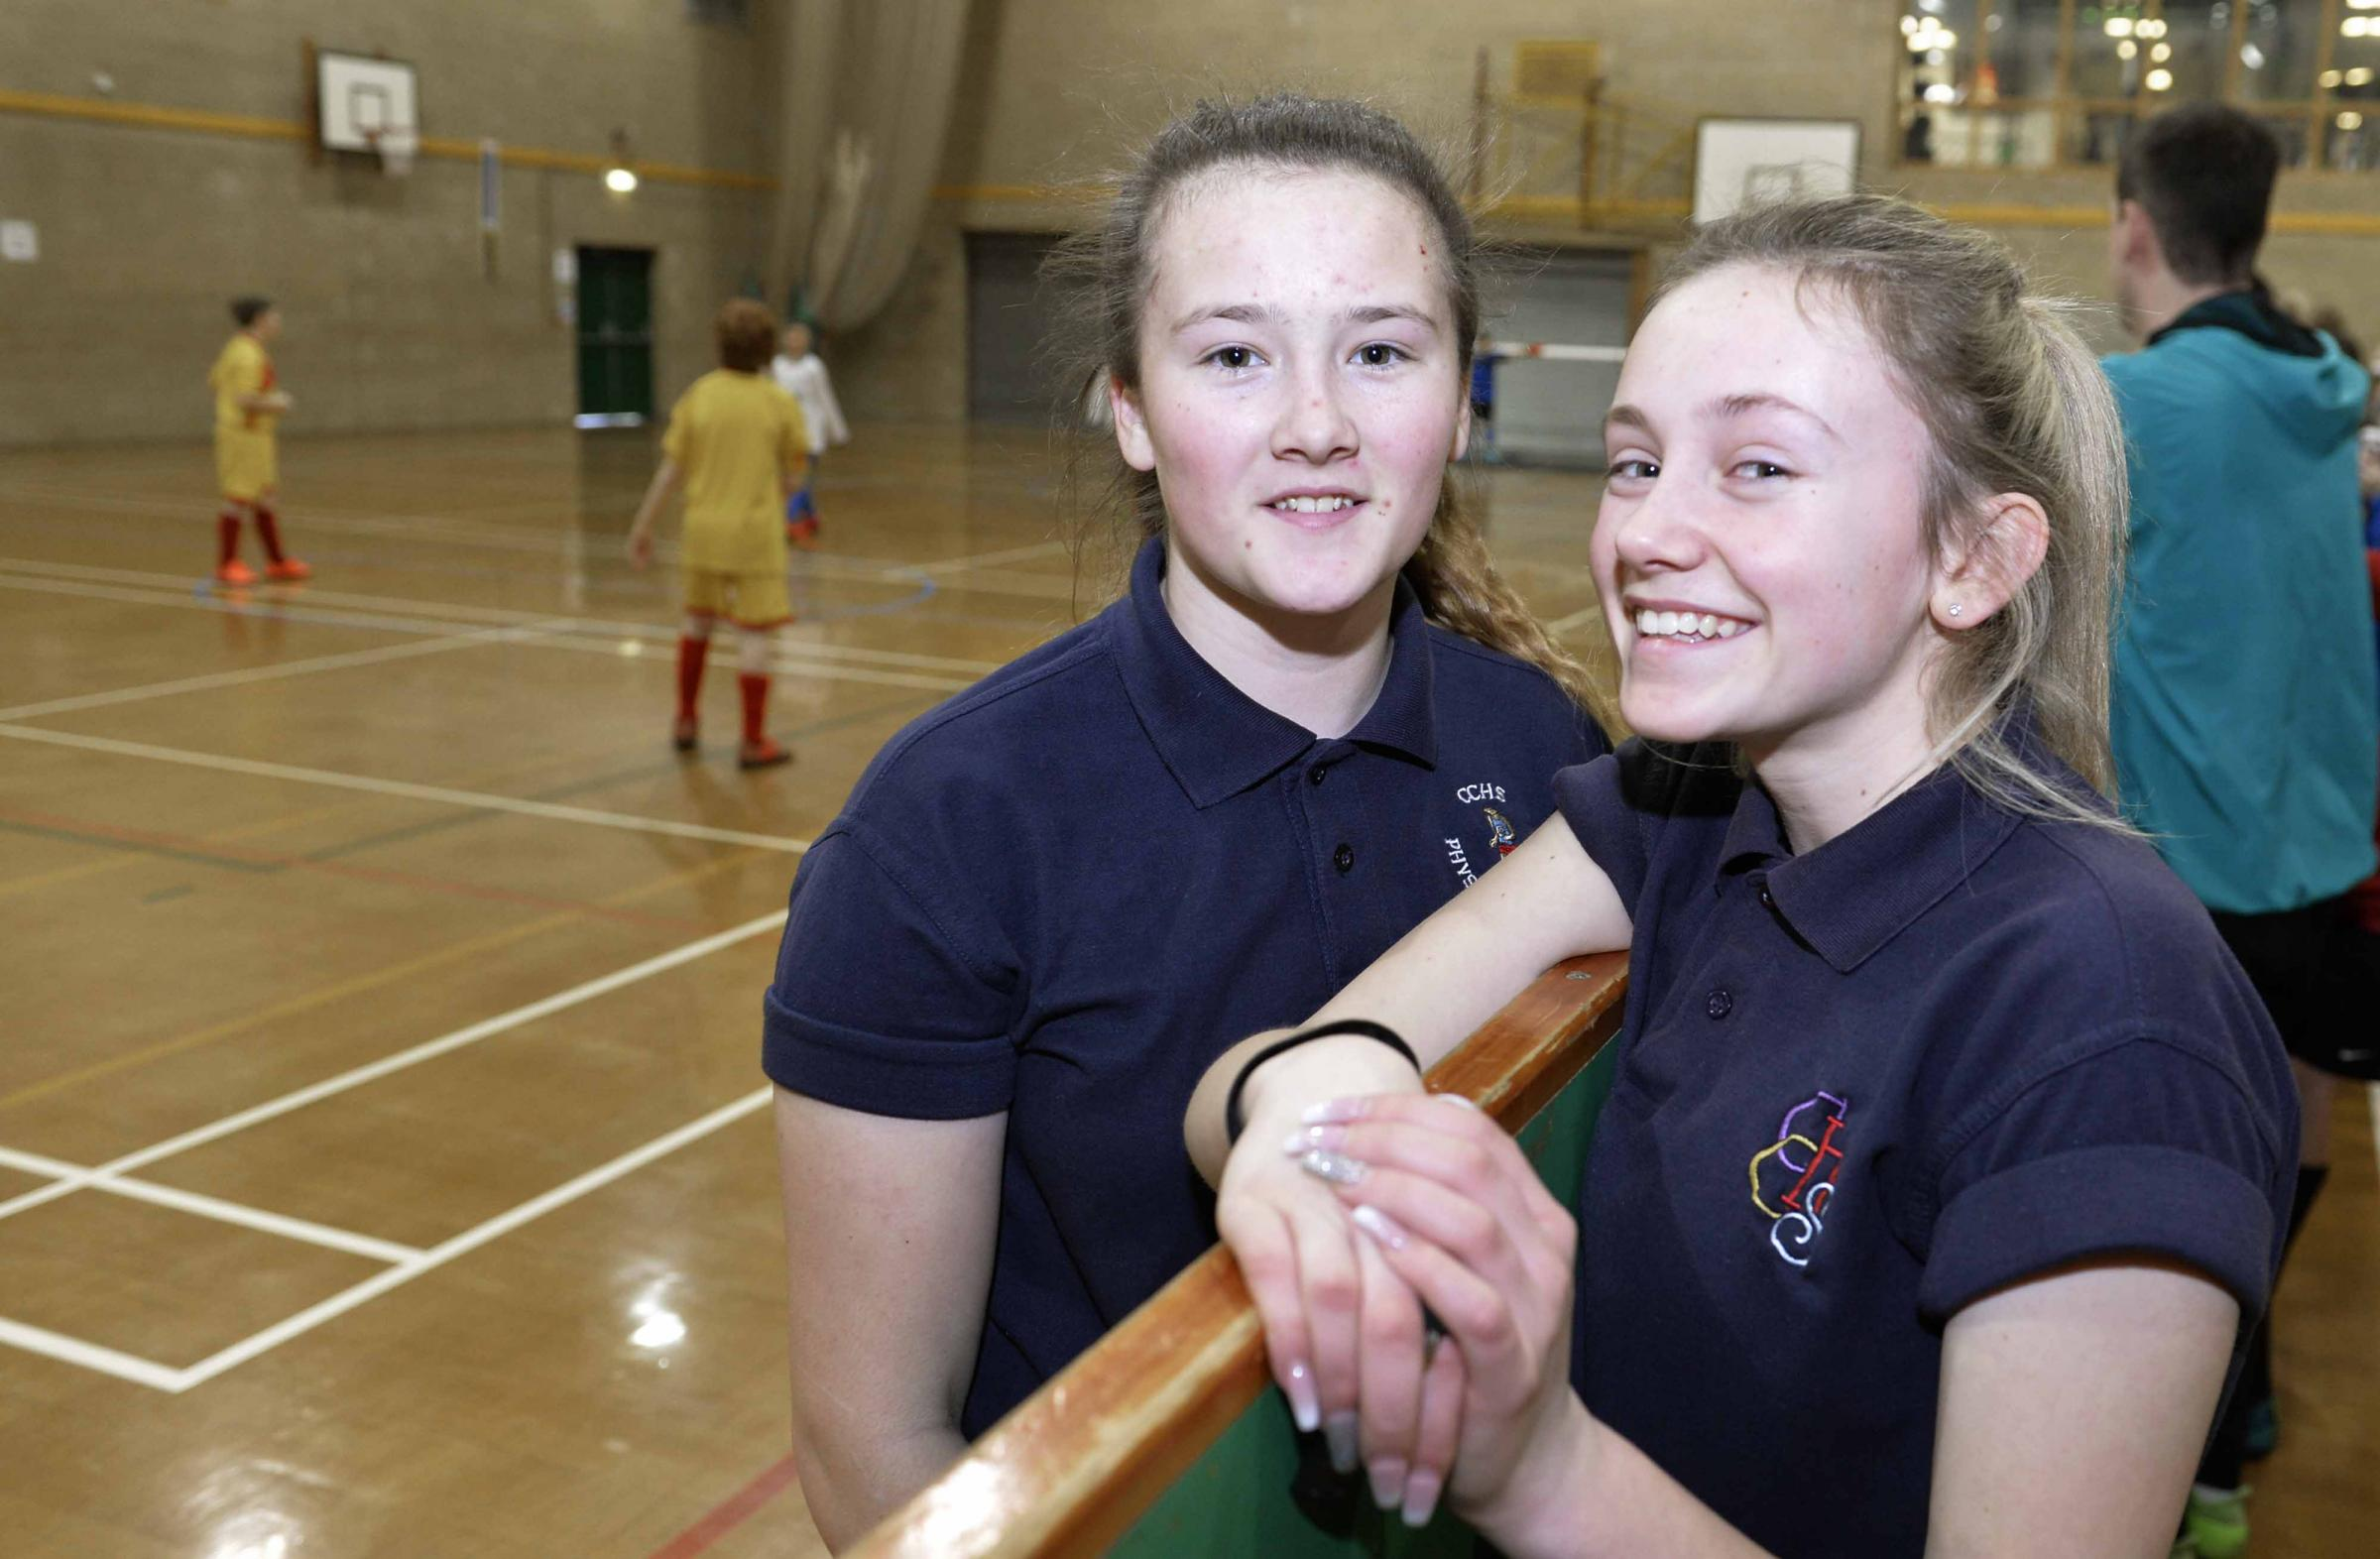 Year ten Clacton County High School students Hermione Wood and Elise Purser qualified as football refs